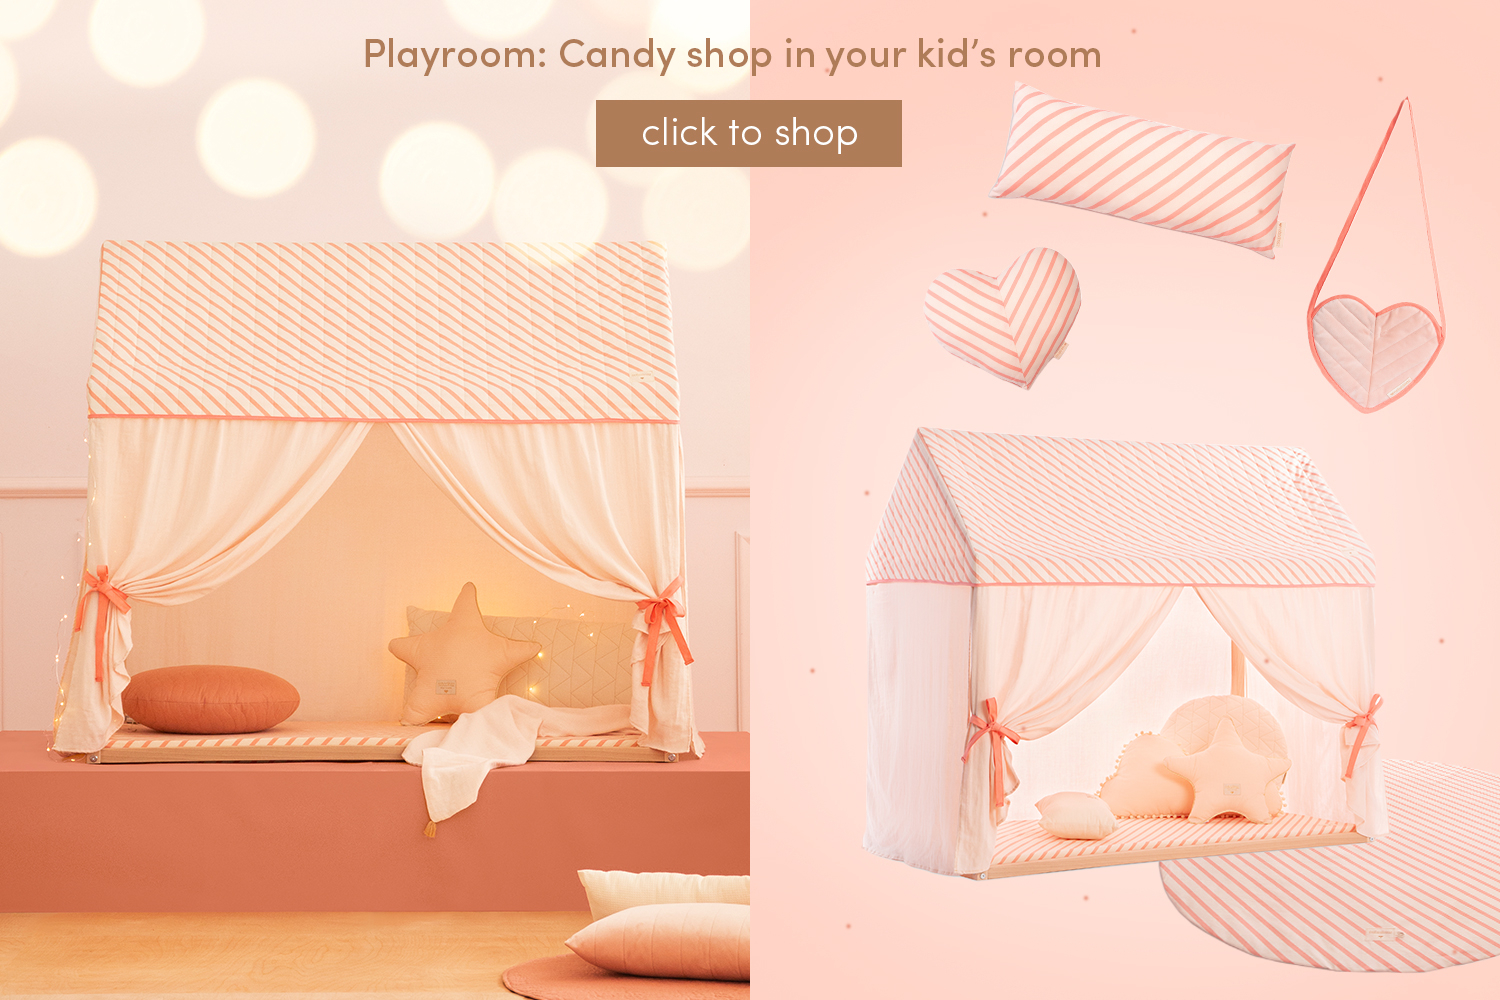 Playroom: Candy shop in your kid's room